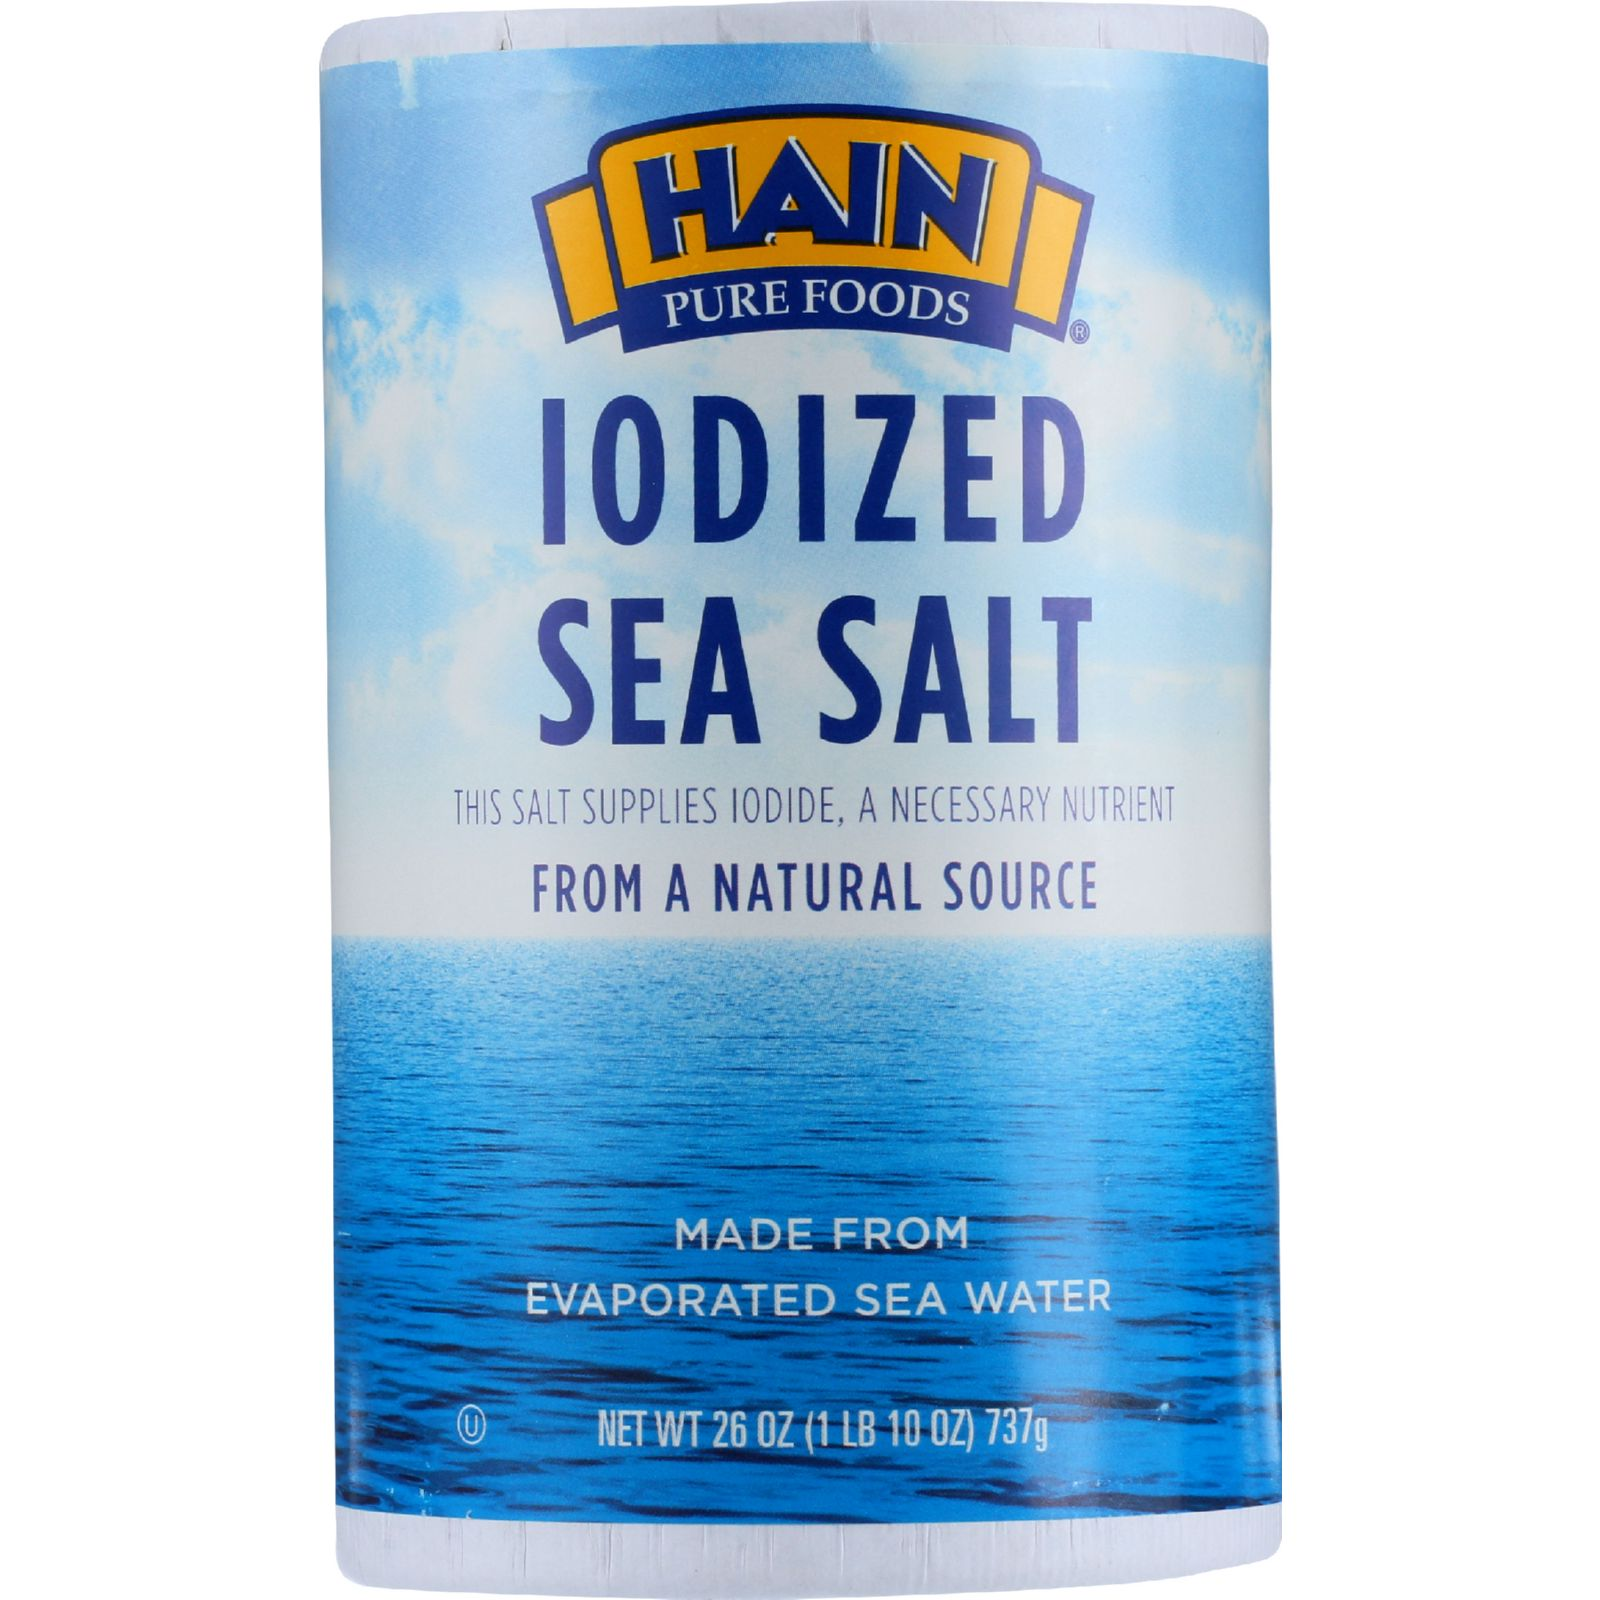 Hain Sea Salt - Iodized - 26 oz - 1 each